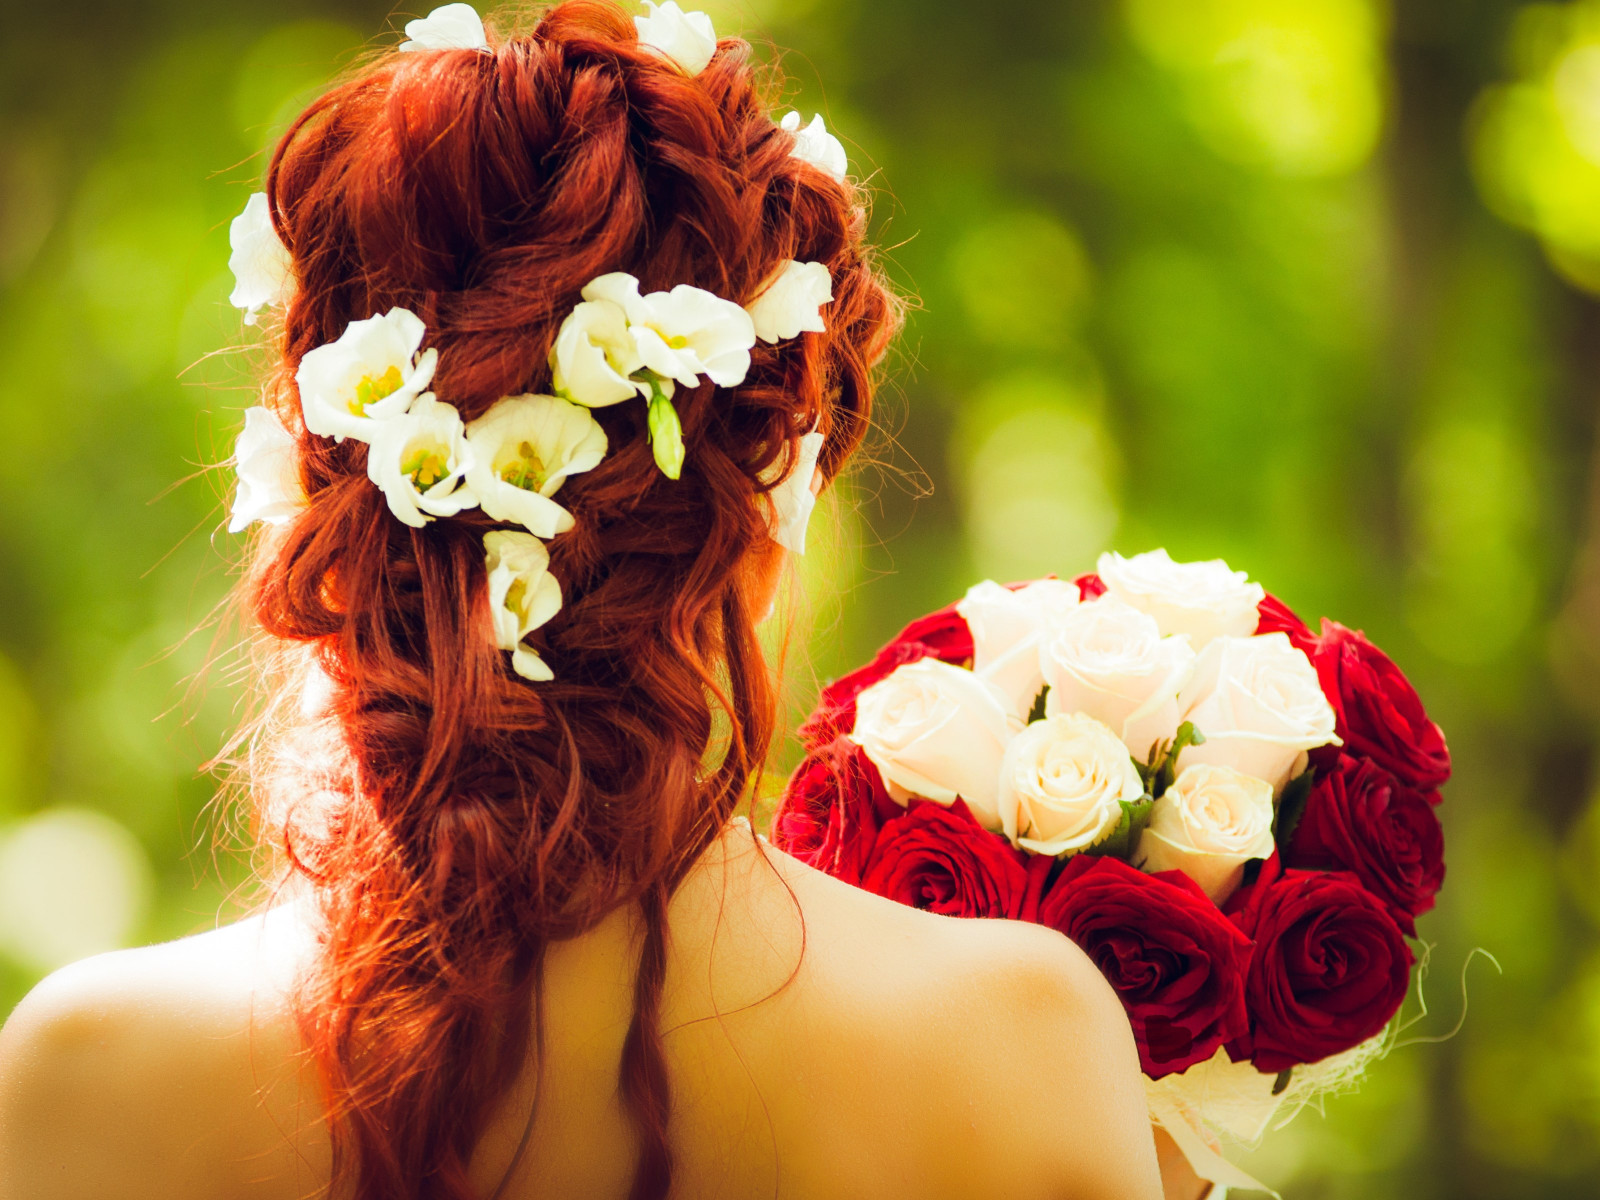 Bride and wedding flowers wallpaper 1600x1200